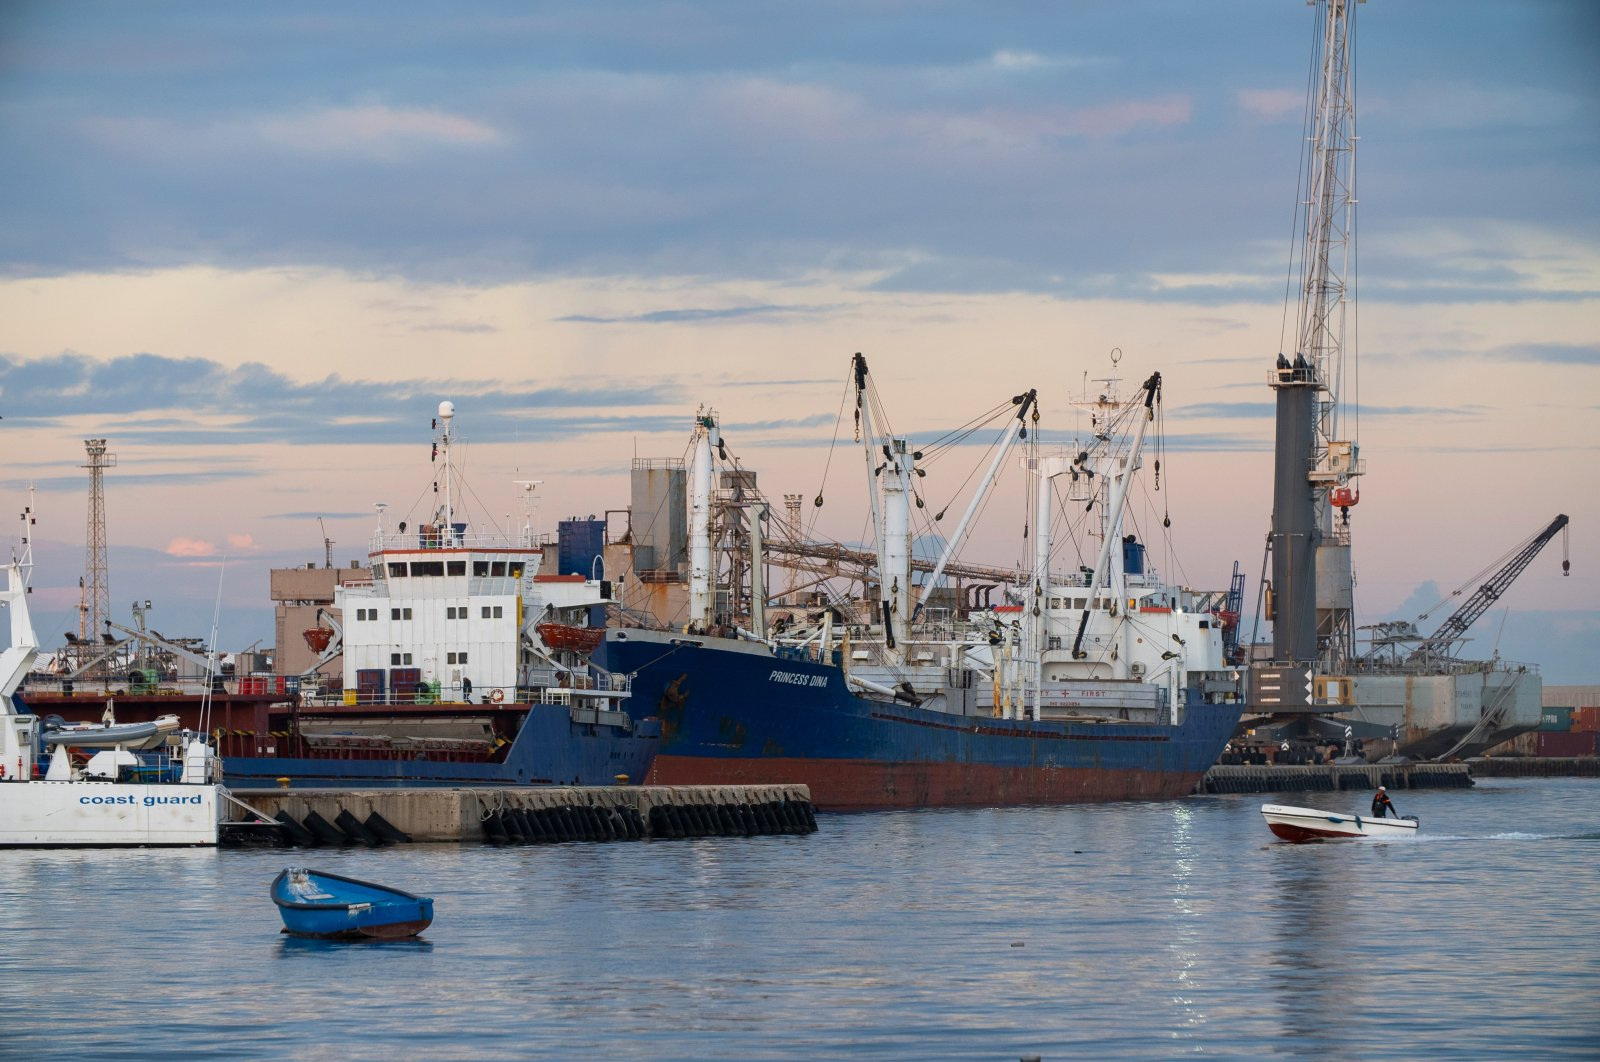 Container ships with loading cranes at the Port of Tripoli, Libya, Nov. 25, 2020. (Shutterstock Photo)